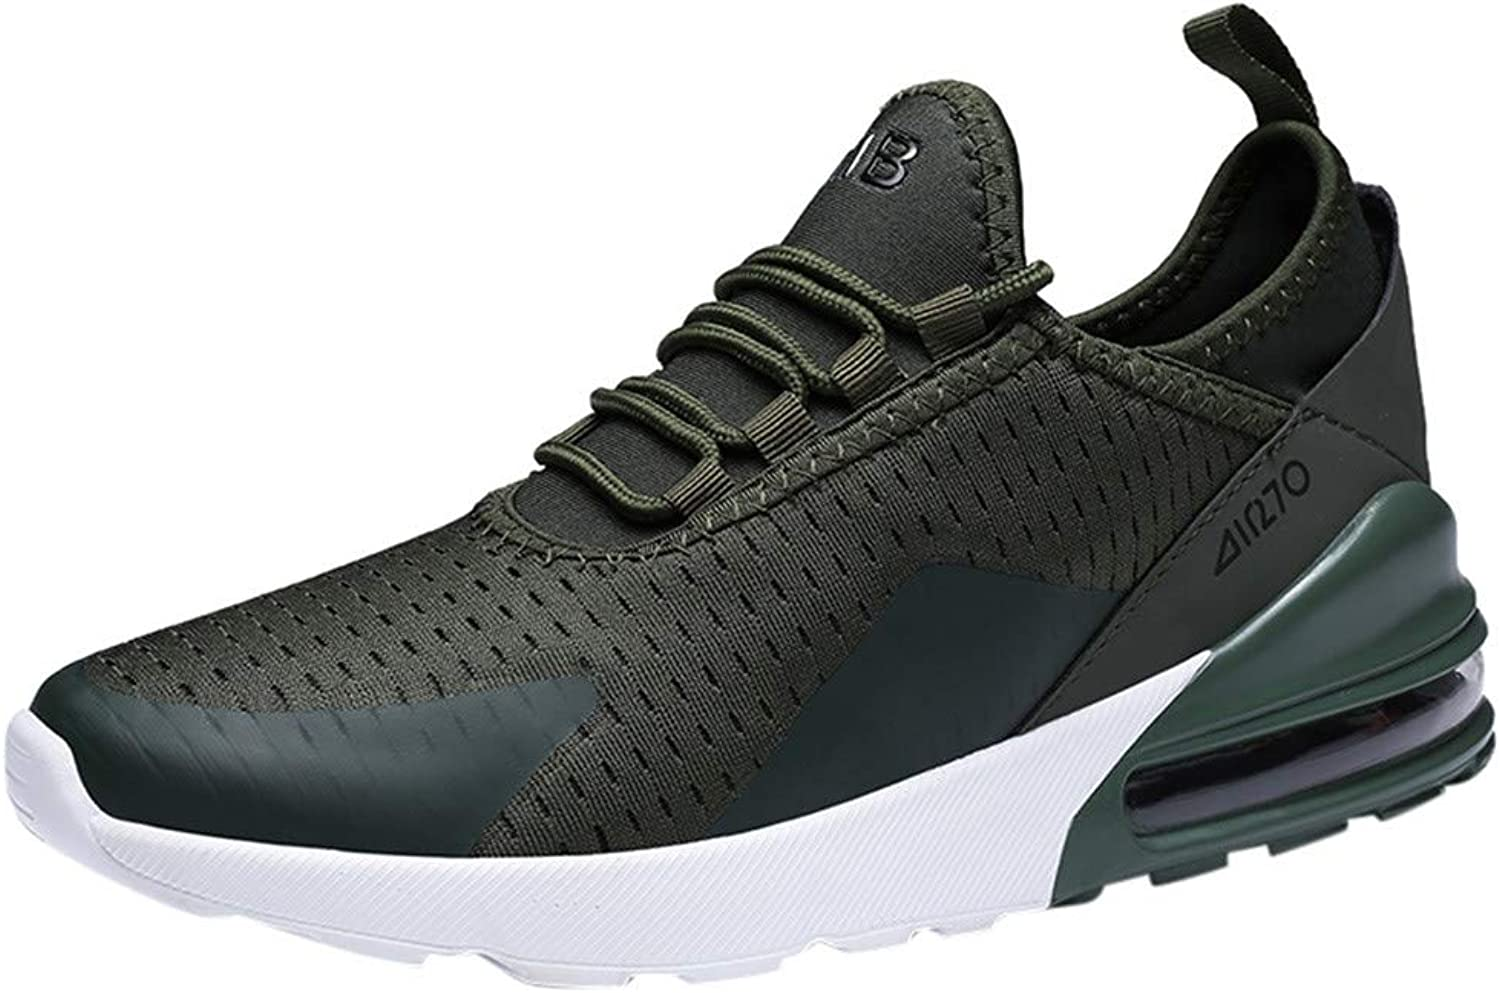 Shinericed Running shoes, Summer Men's Mesh Breathable Sneakers Training